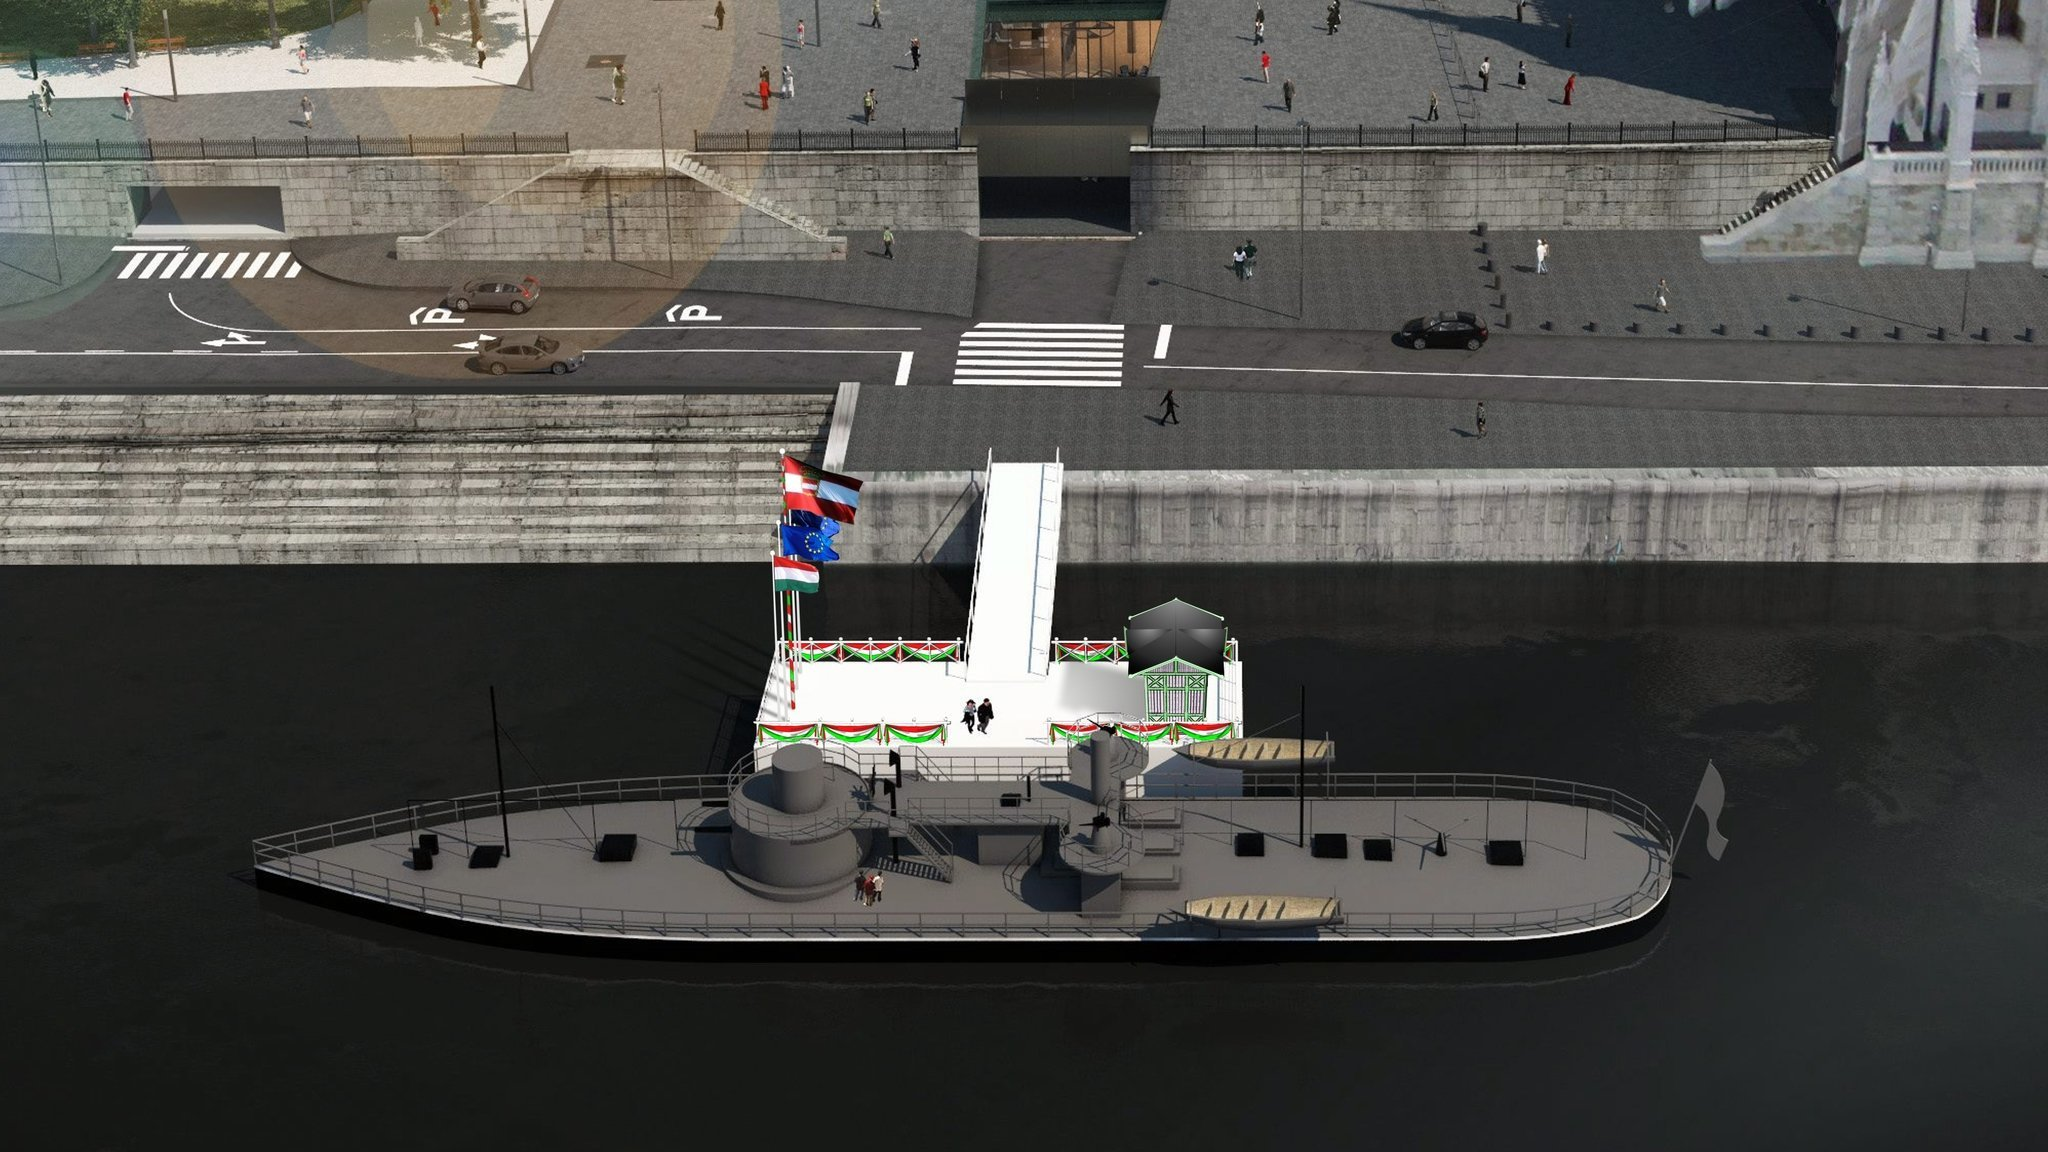 Europe's Oldest River Battleship Inaugurated as Museum at Parliament Pier